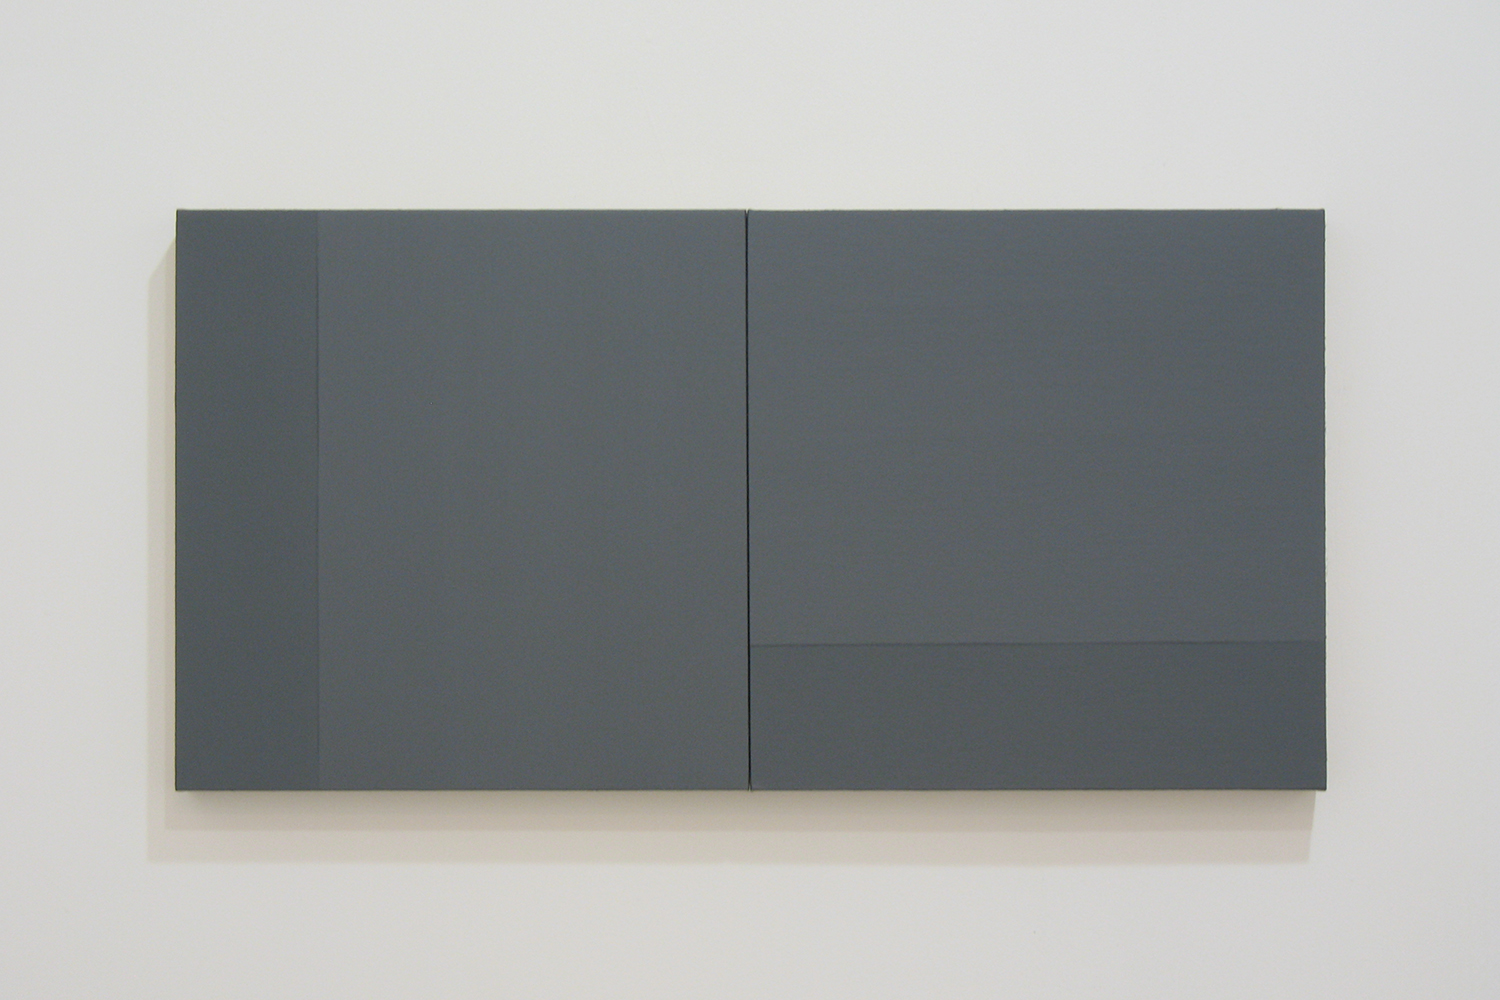 TS0802|Gesso on linen on panel|35 x 70 cm (set of 2)|2008